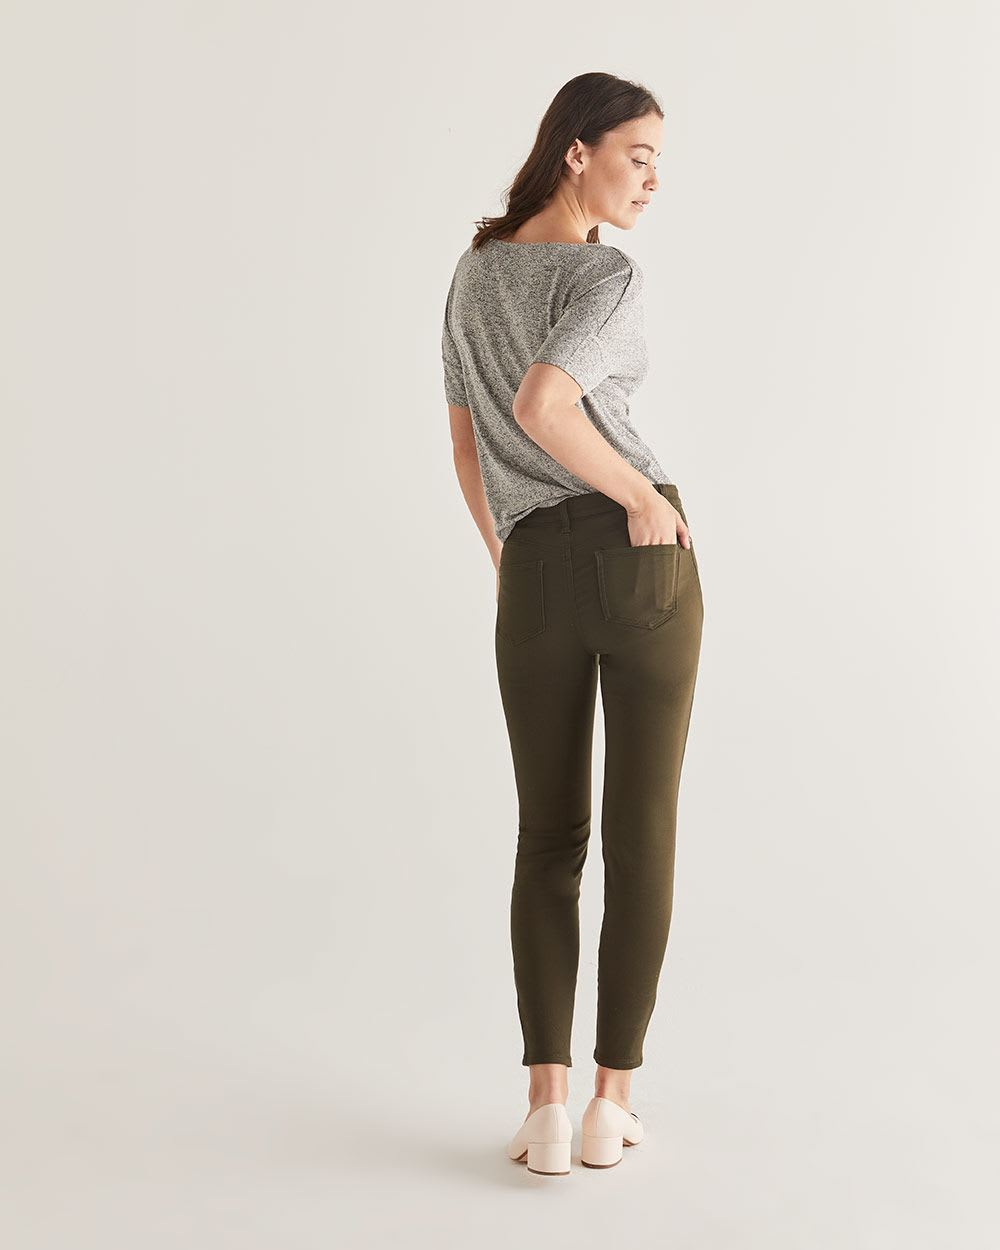 The Coloured Sculpting Skinny Jeans